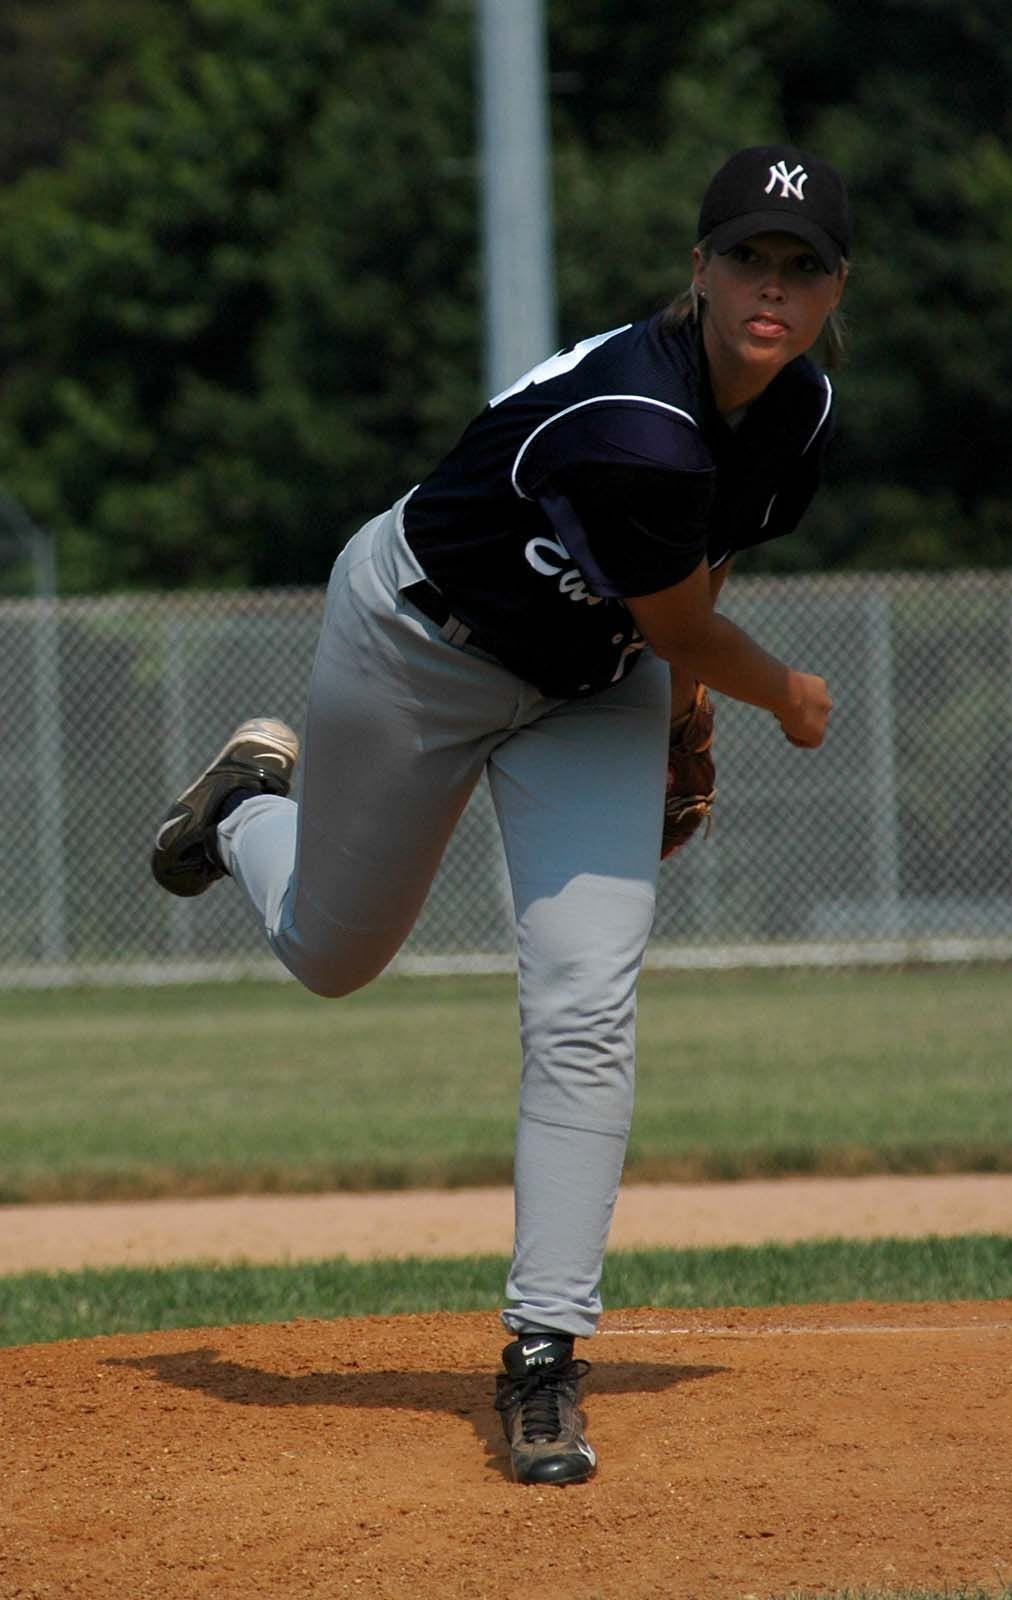 Kristin Mills-Caldwell pitches for the East Coast Yankees of the East Coast Women's Baseball League in 2005.